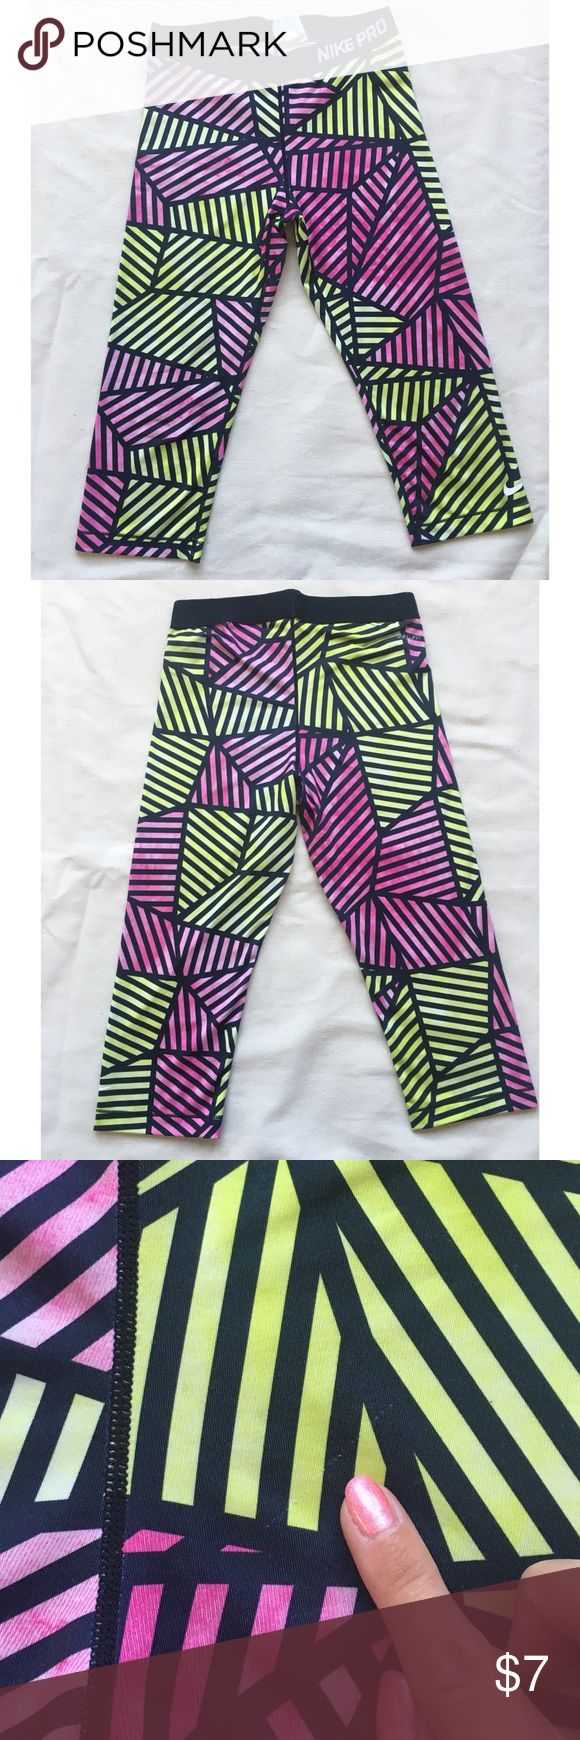 Nike Geometric Workout Tights These workout tights are clutch for crushing a workout! These are used, pilling on the inside of the waistband and a small pull shown on the back. Price reflects used condition. Nike Pants Capris